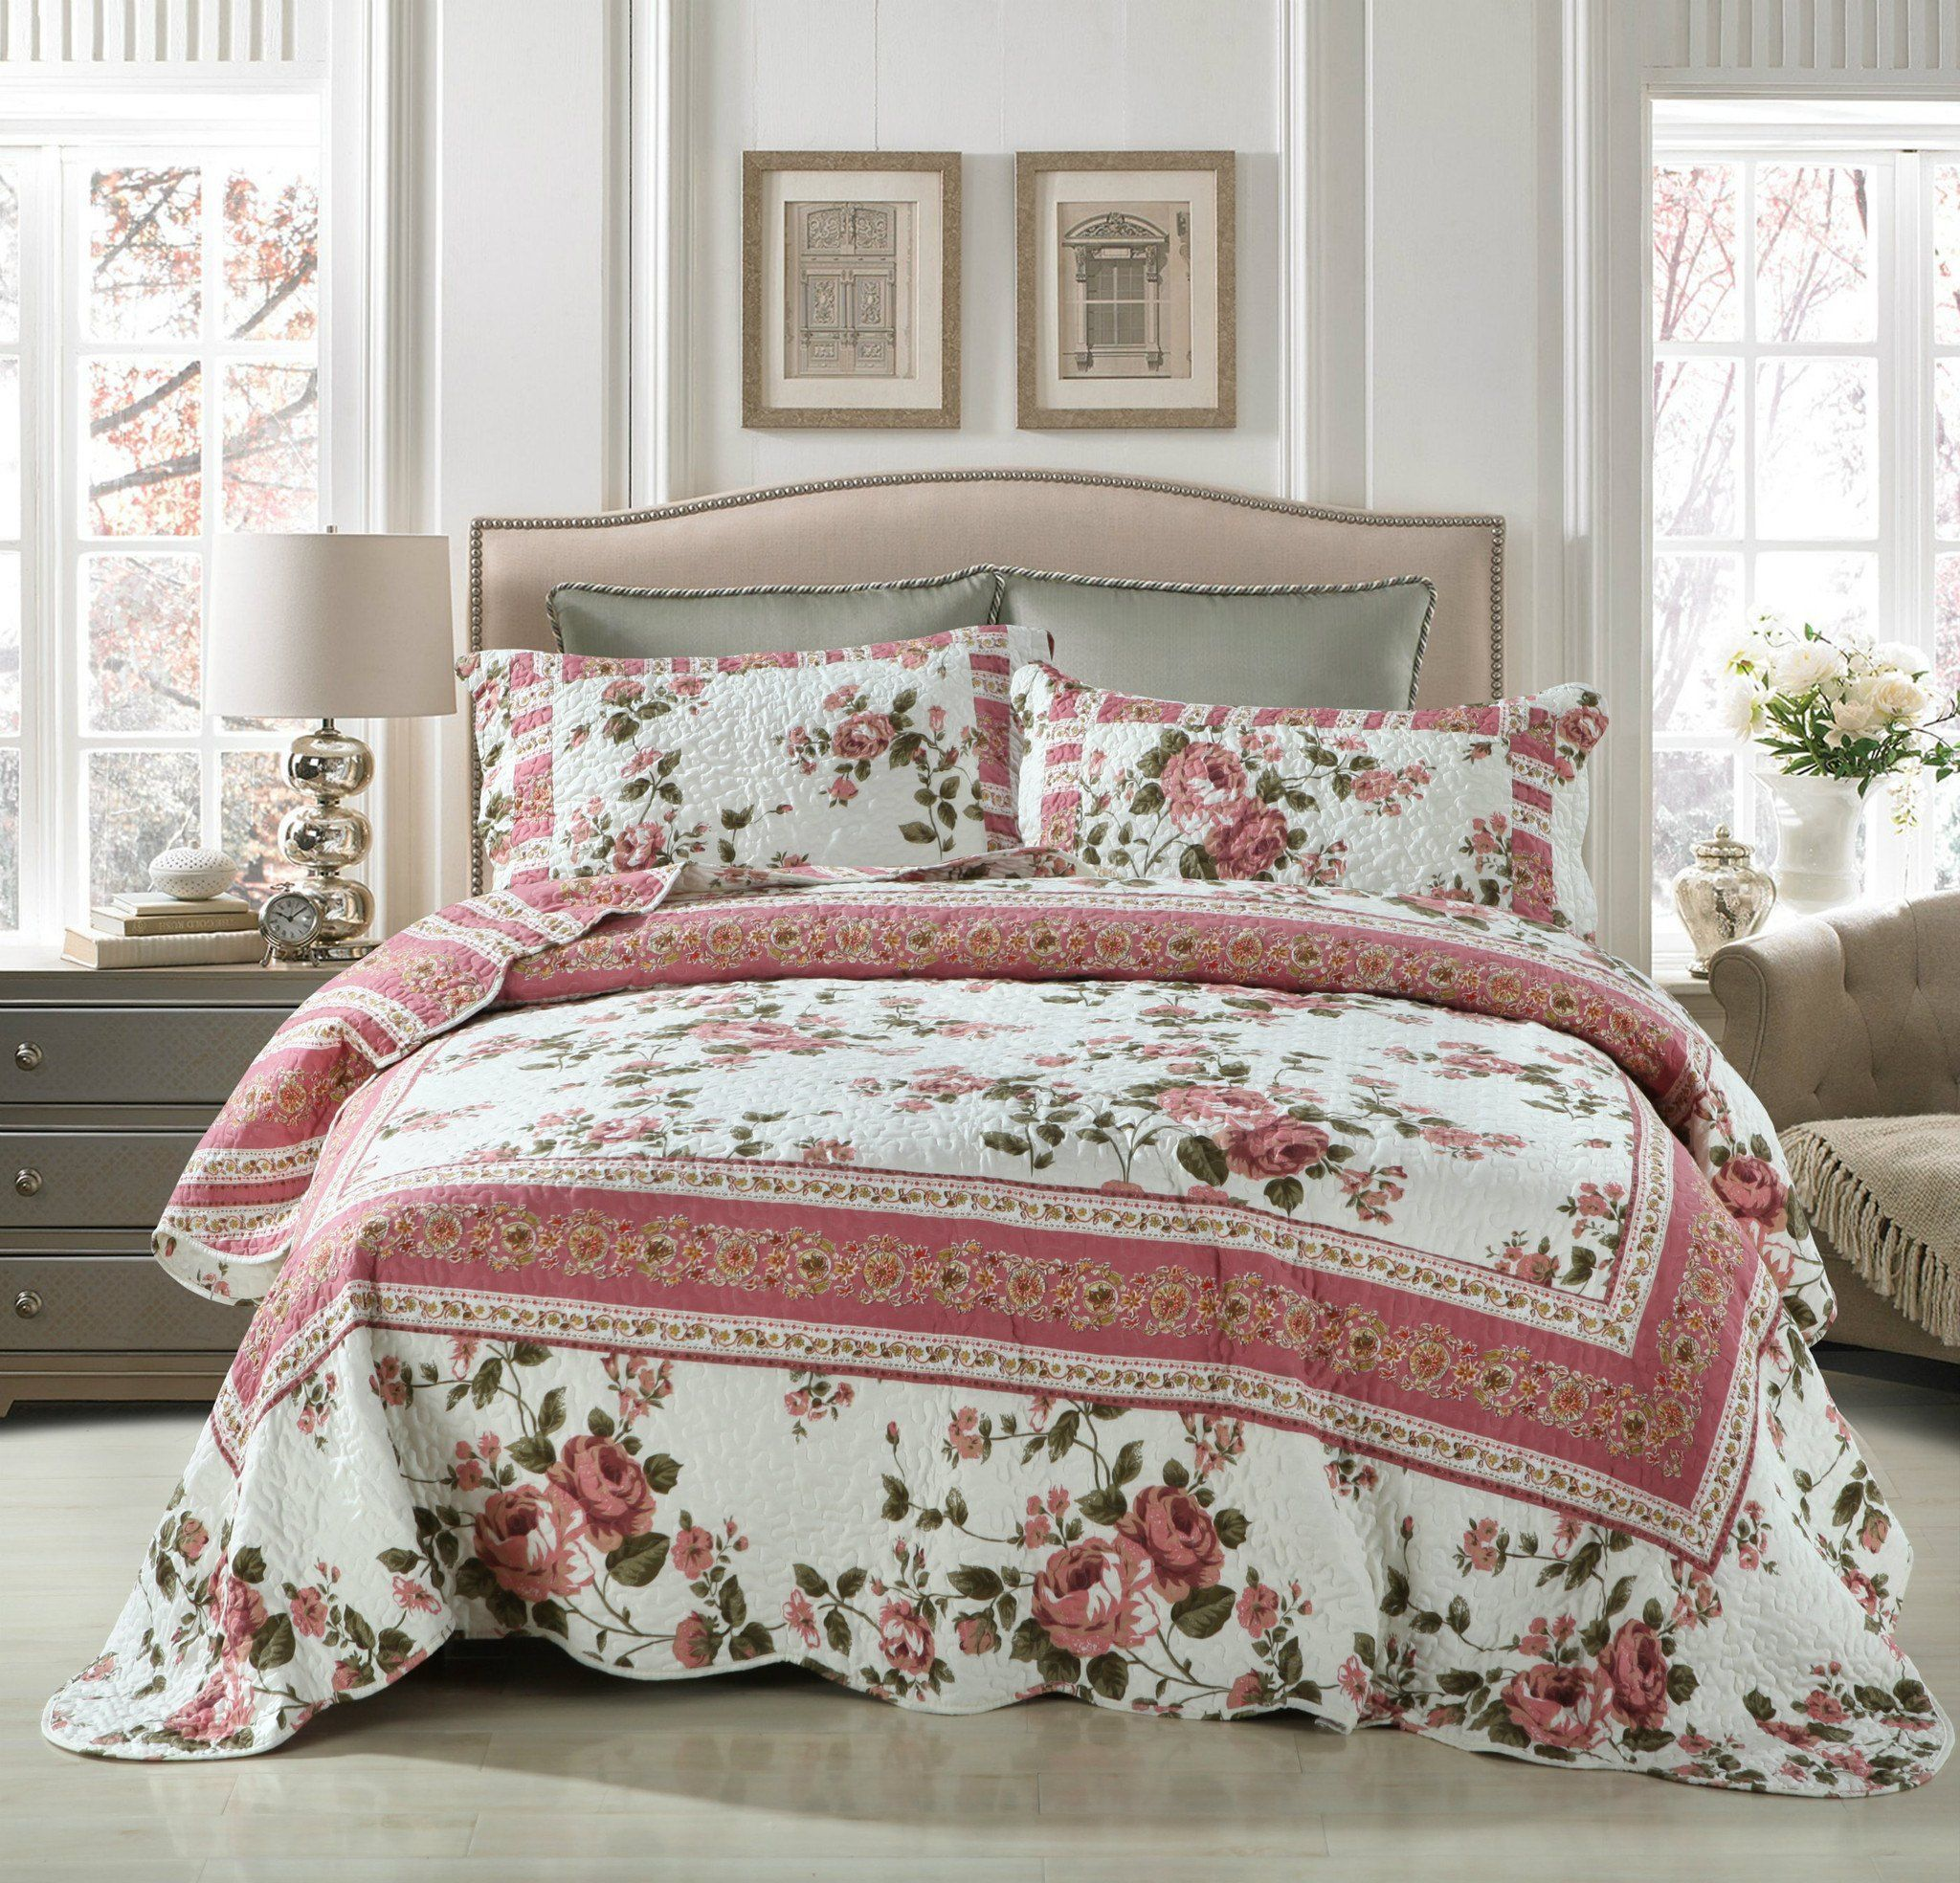 DaDa Bedding Dainty Bohemian Cottage Dusty Roses Floral Patchwork ...